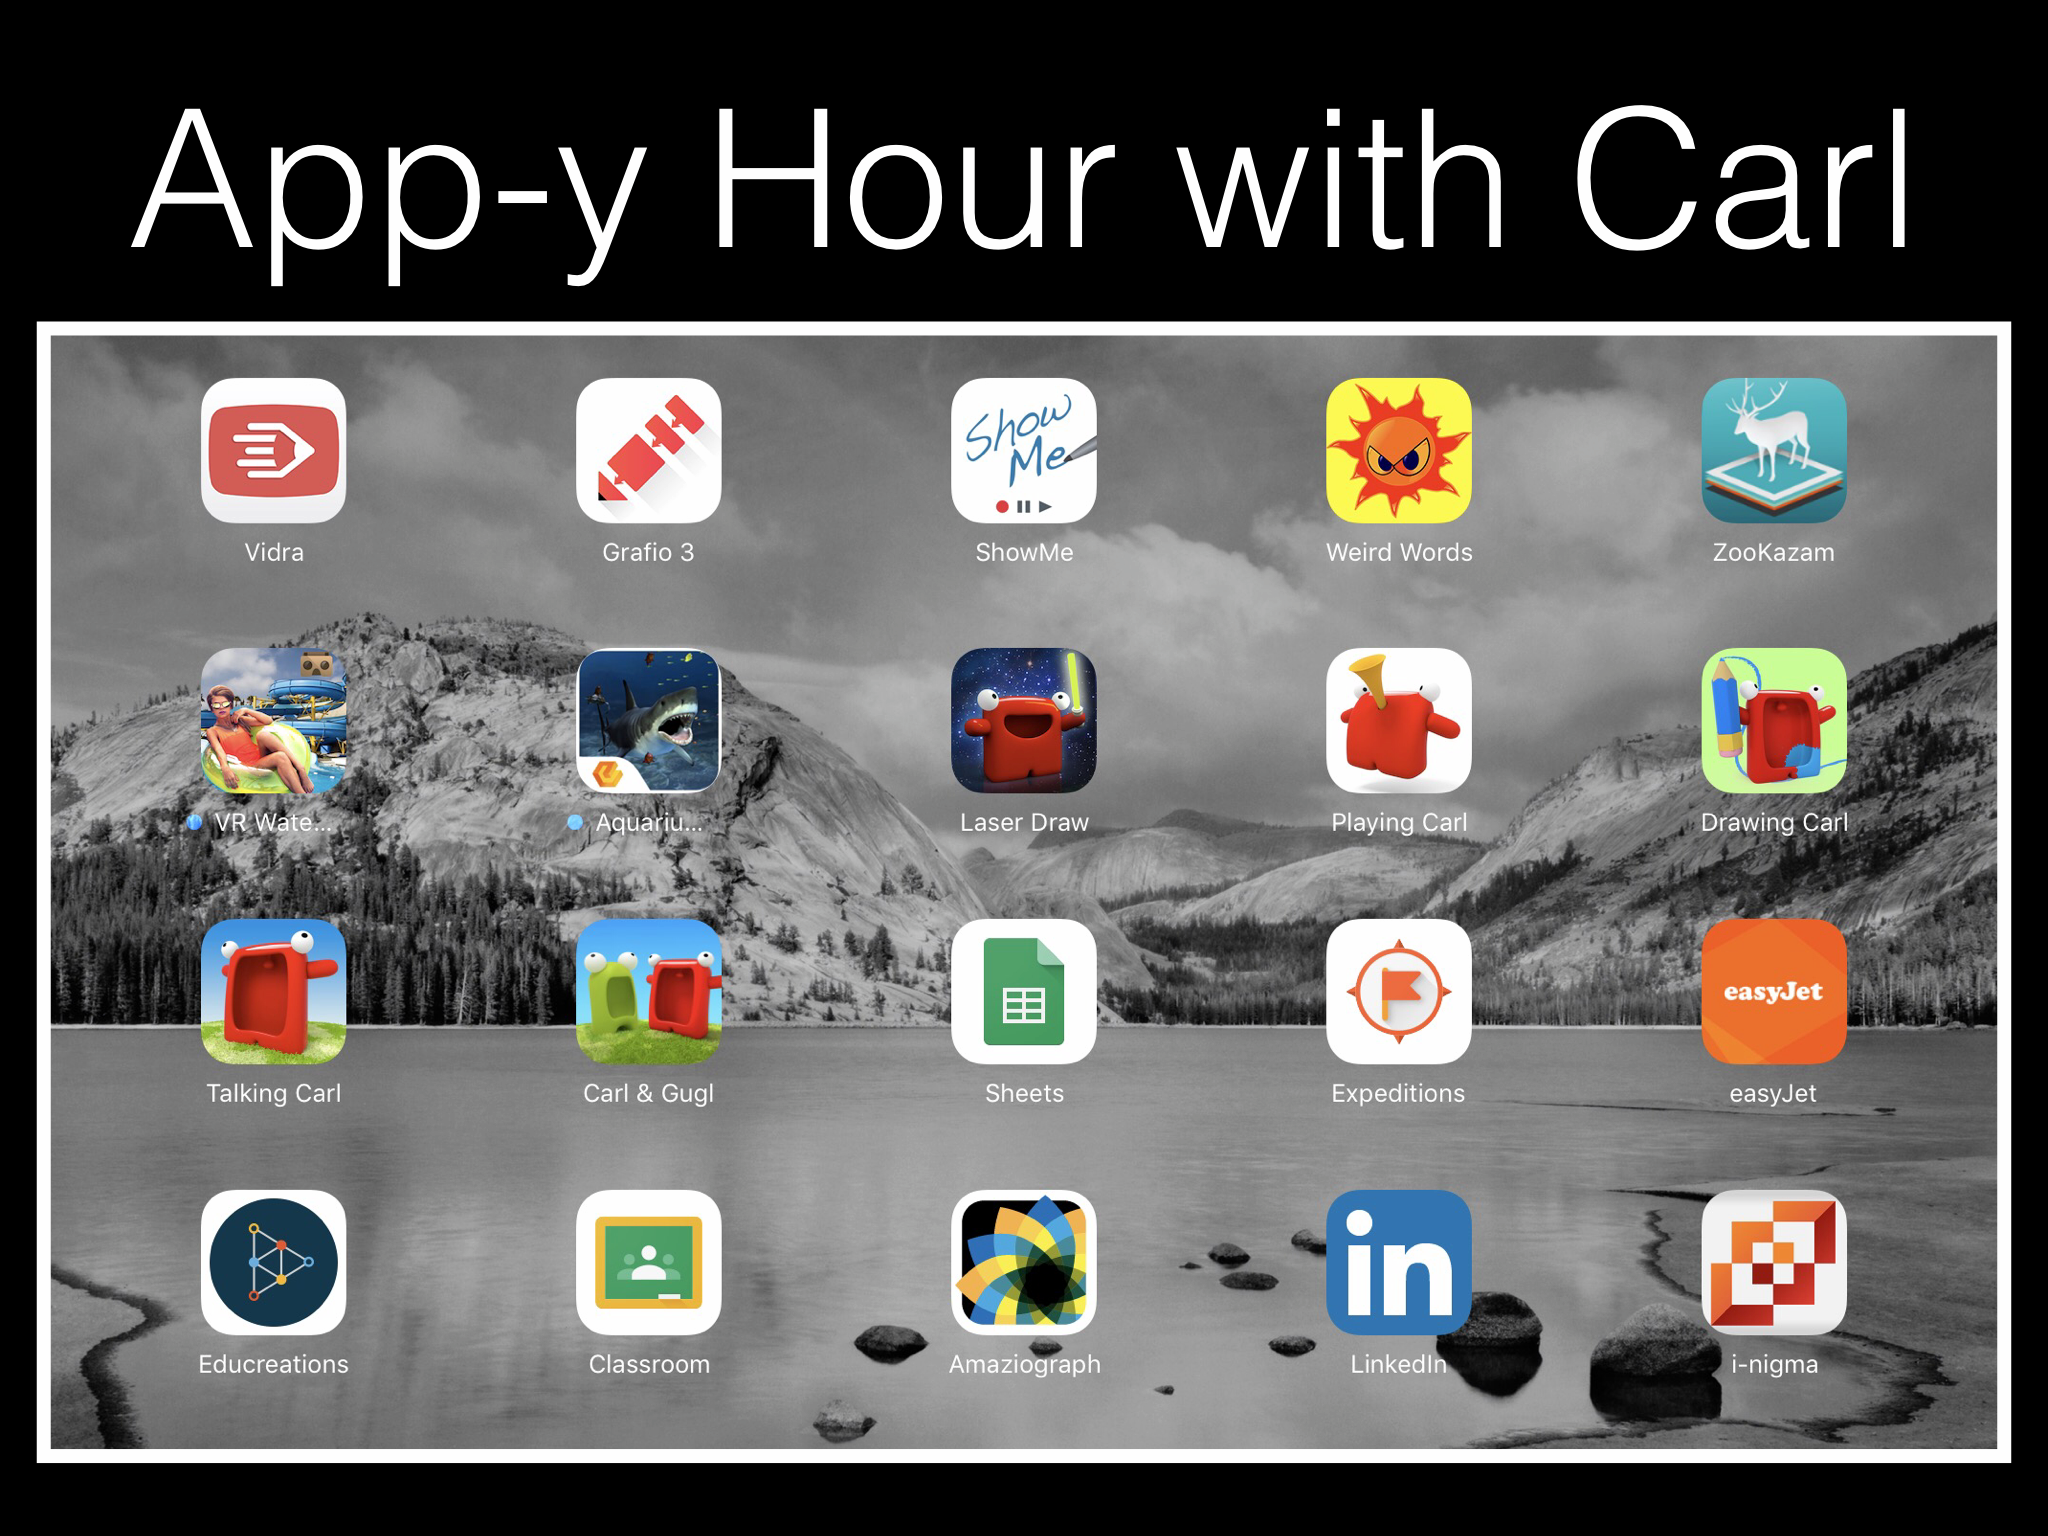 App-y Hour with Carl